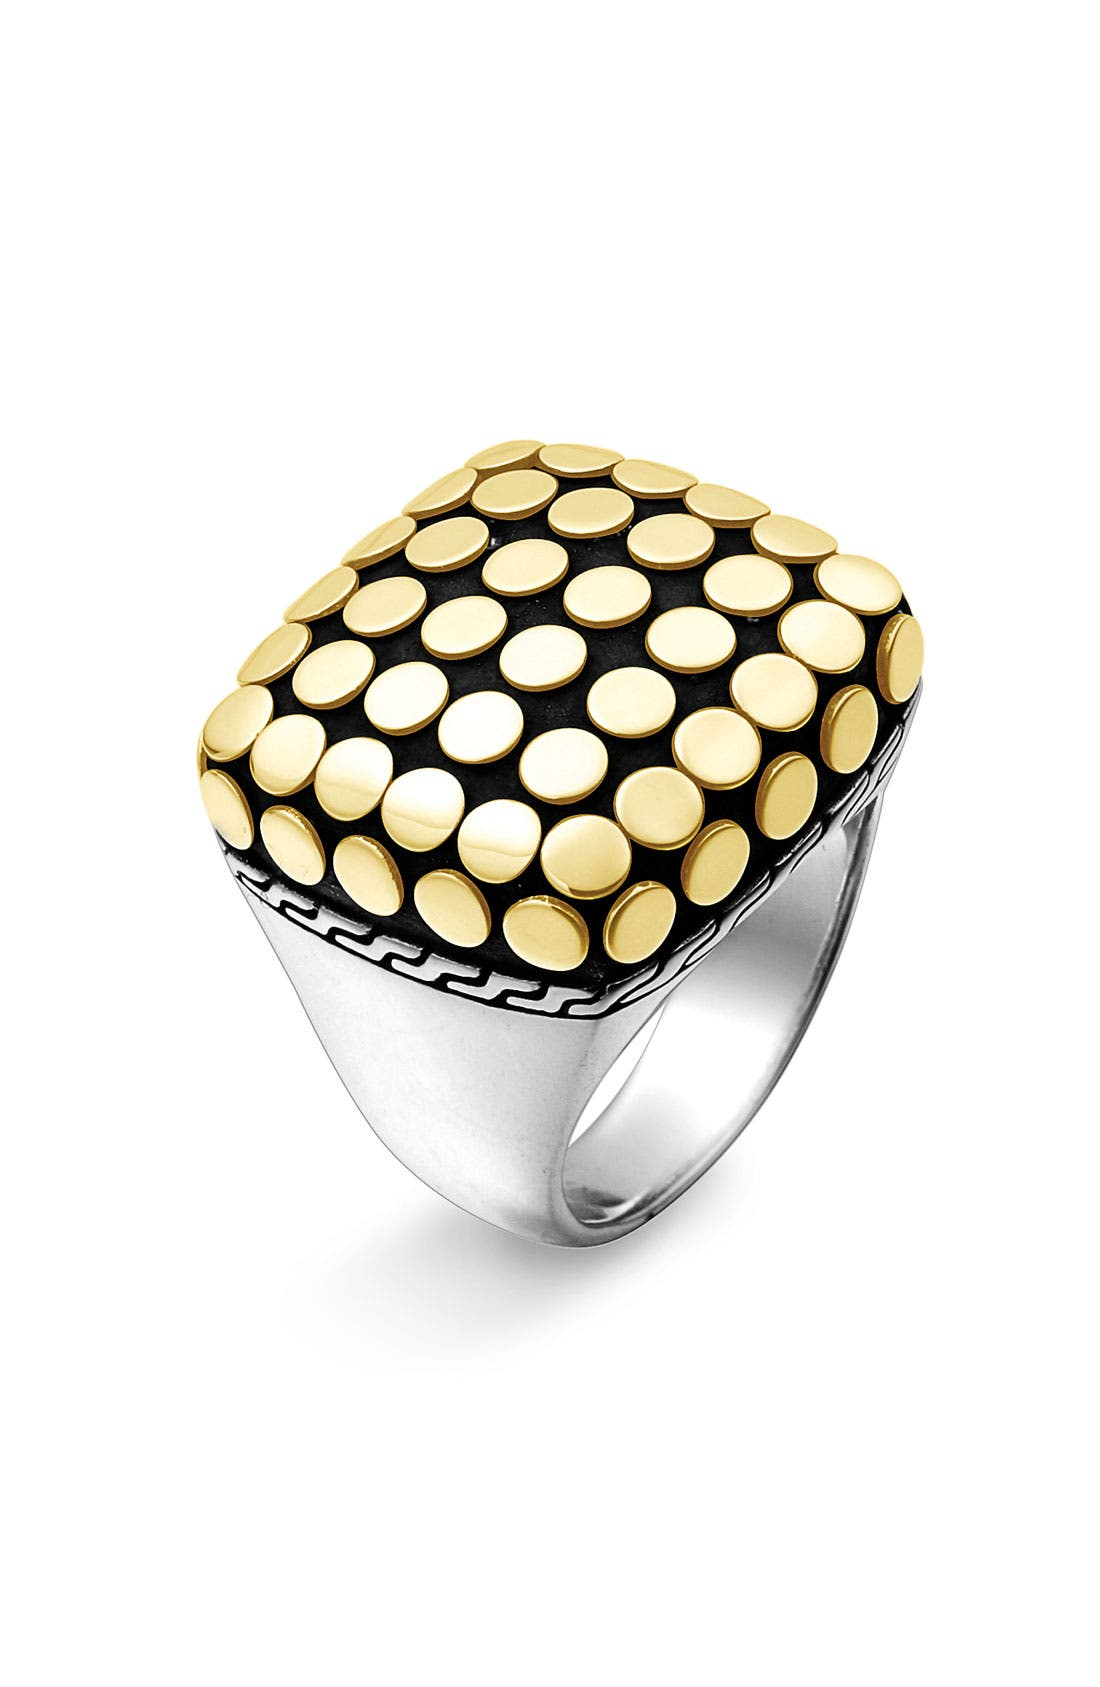 Alternate Image 1 Selected - John Hardy 'Dot Gold' Square Ring